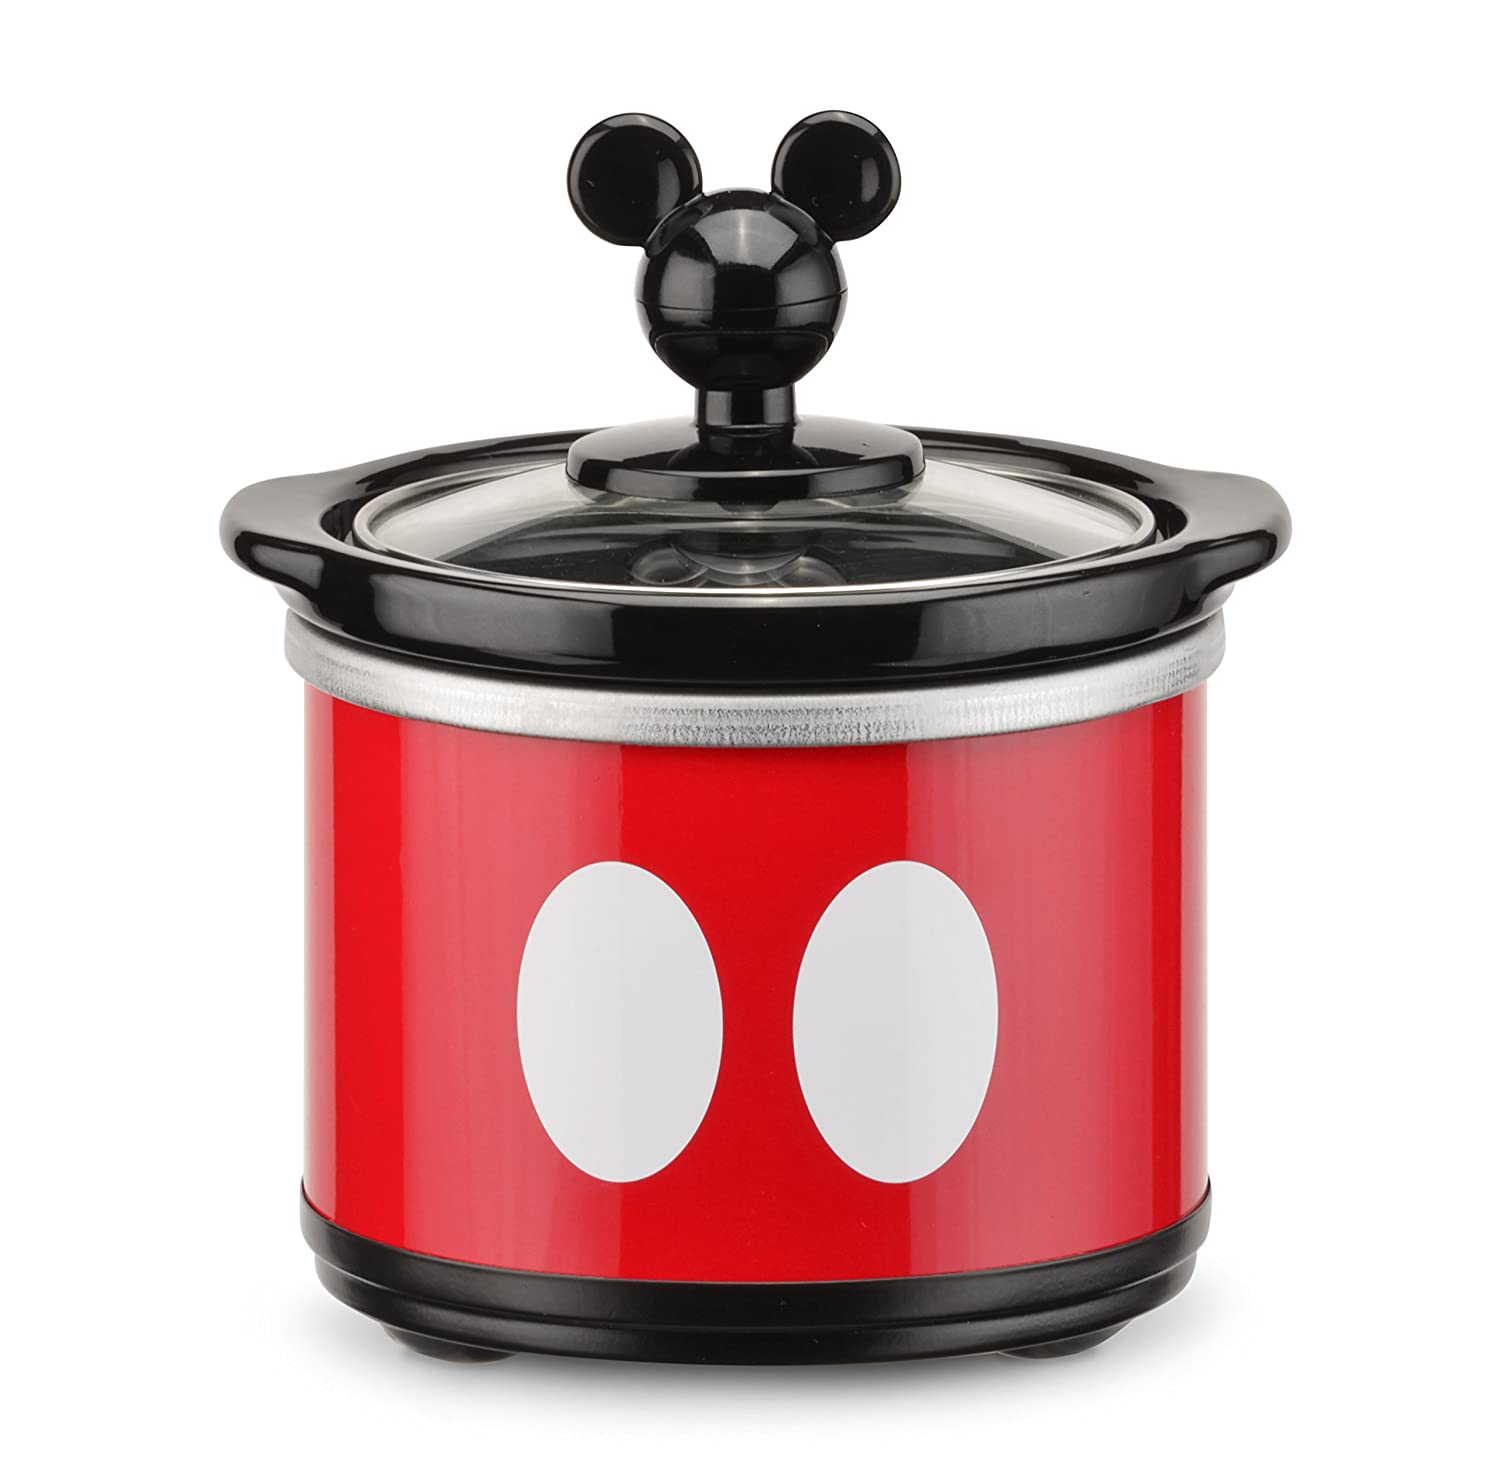 Uncategorized Disney Kitchen Appliances amazon com disney dcm 502 mickey mouse 5 quart oval slow cooker with 20 oz dipper redblack kitchen dining